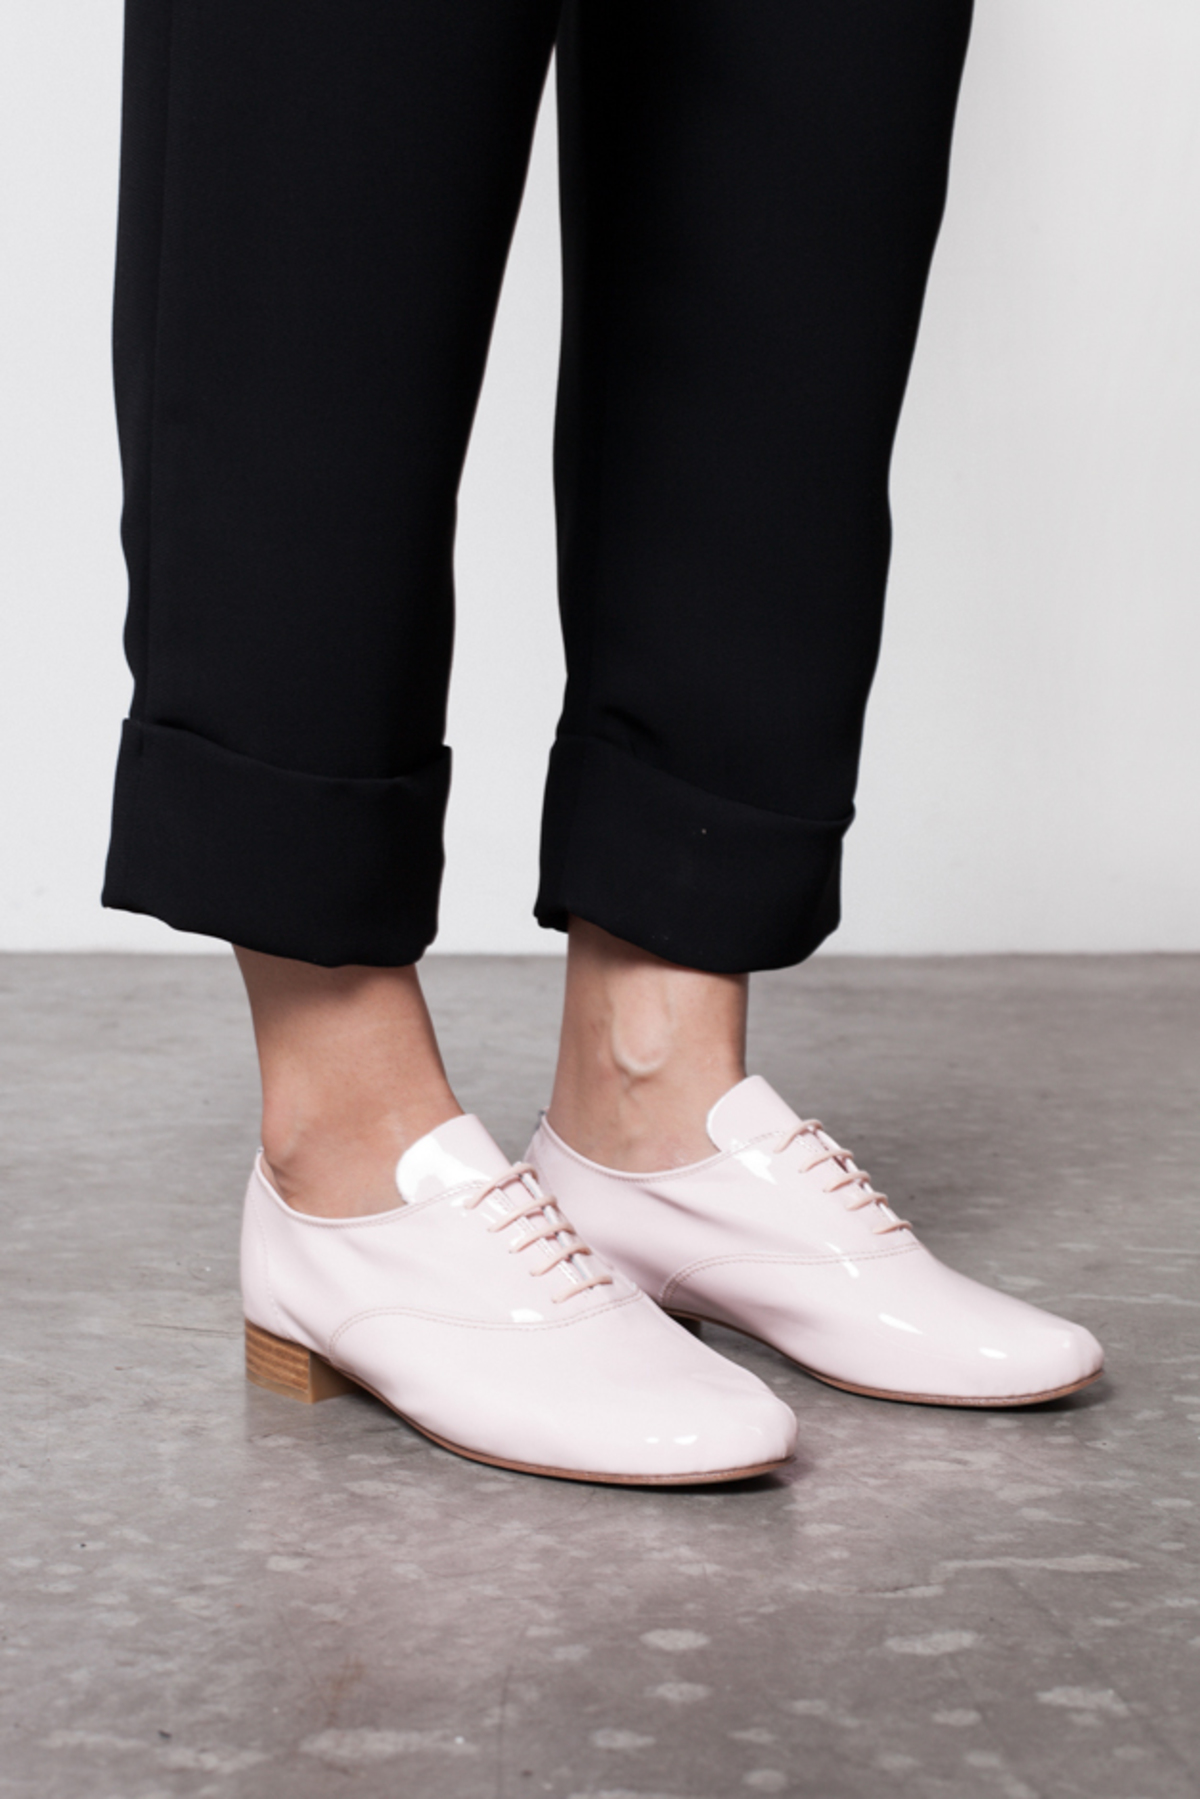 Buy Online Outlet Repetto 'Zizi' Oxford shoes Outlet Wholesale Price Get Authentic Cheap Online Real Cheap Online Cheap Sale Wide Range Of ue62hz9Nhj